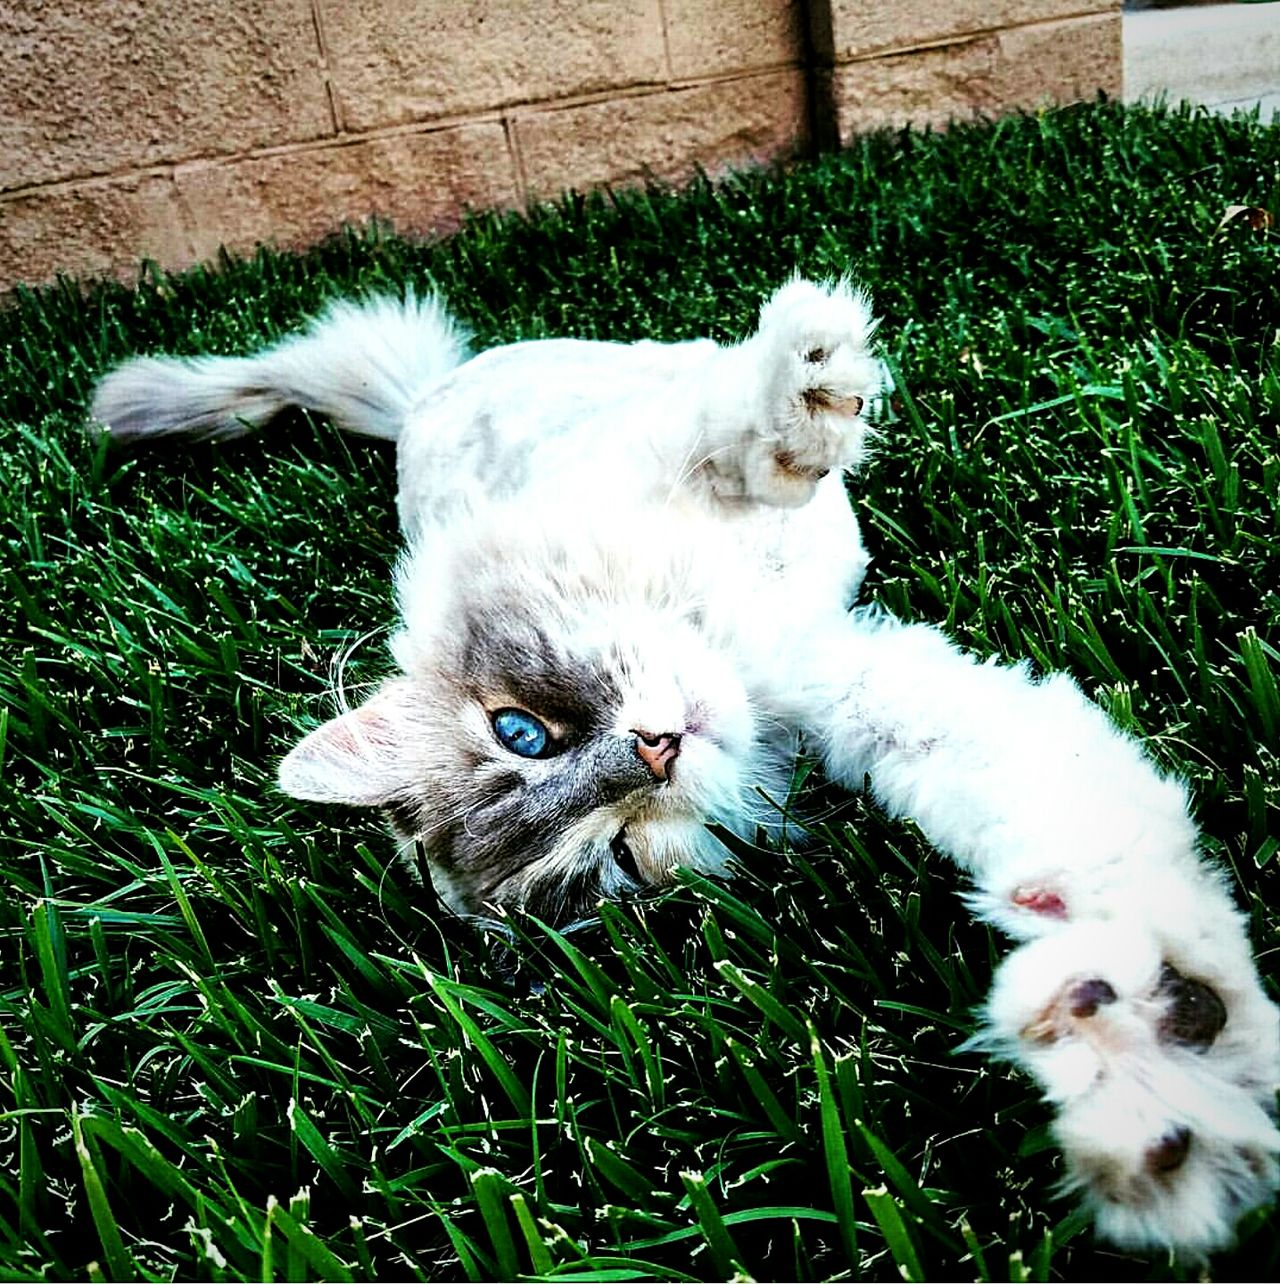 Daisy being weird in the grass ❤ Cat Kitty Mew Meow Grass Photography Cinematography Beautiful Beauty In Nature For Sale Feline Cats Kittys